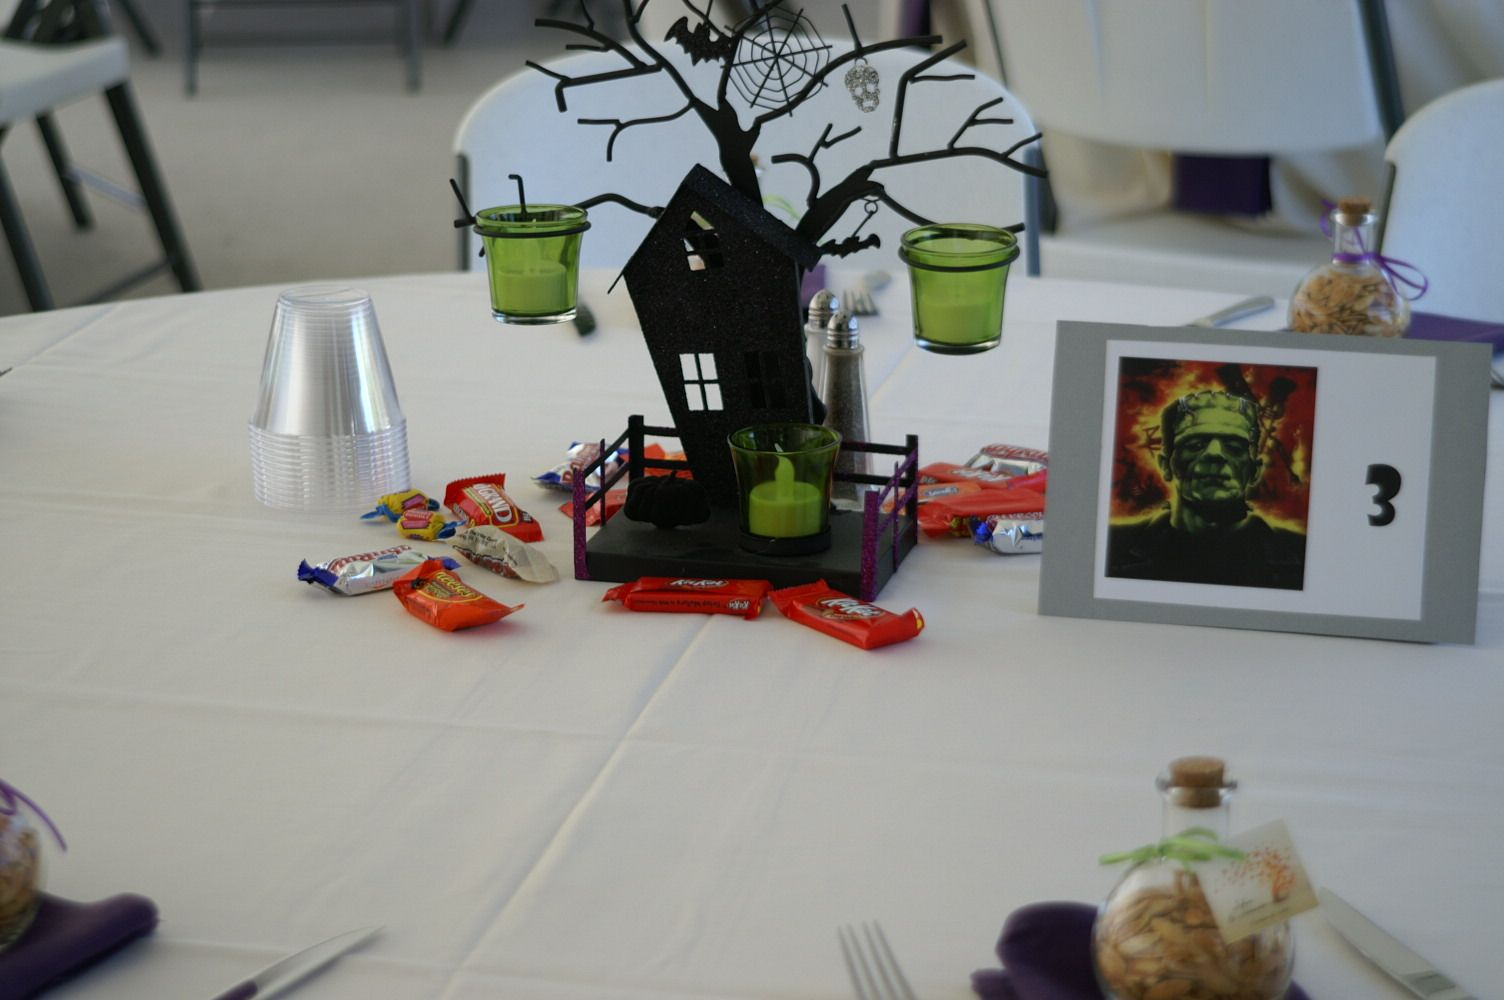 Halloween themed table centerpiece featuring a haunted house and